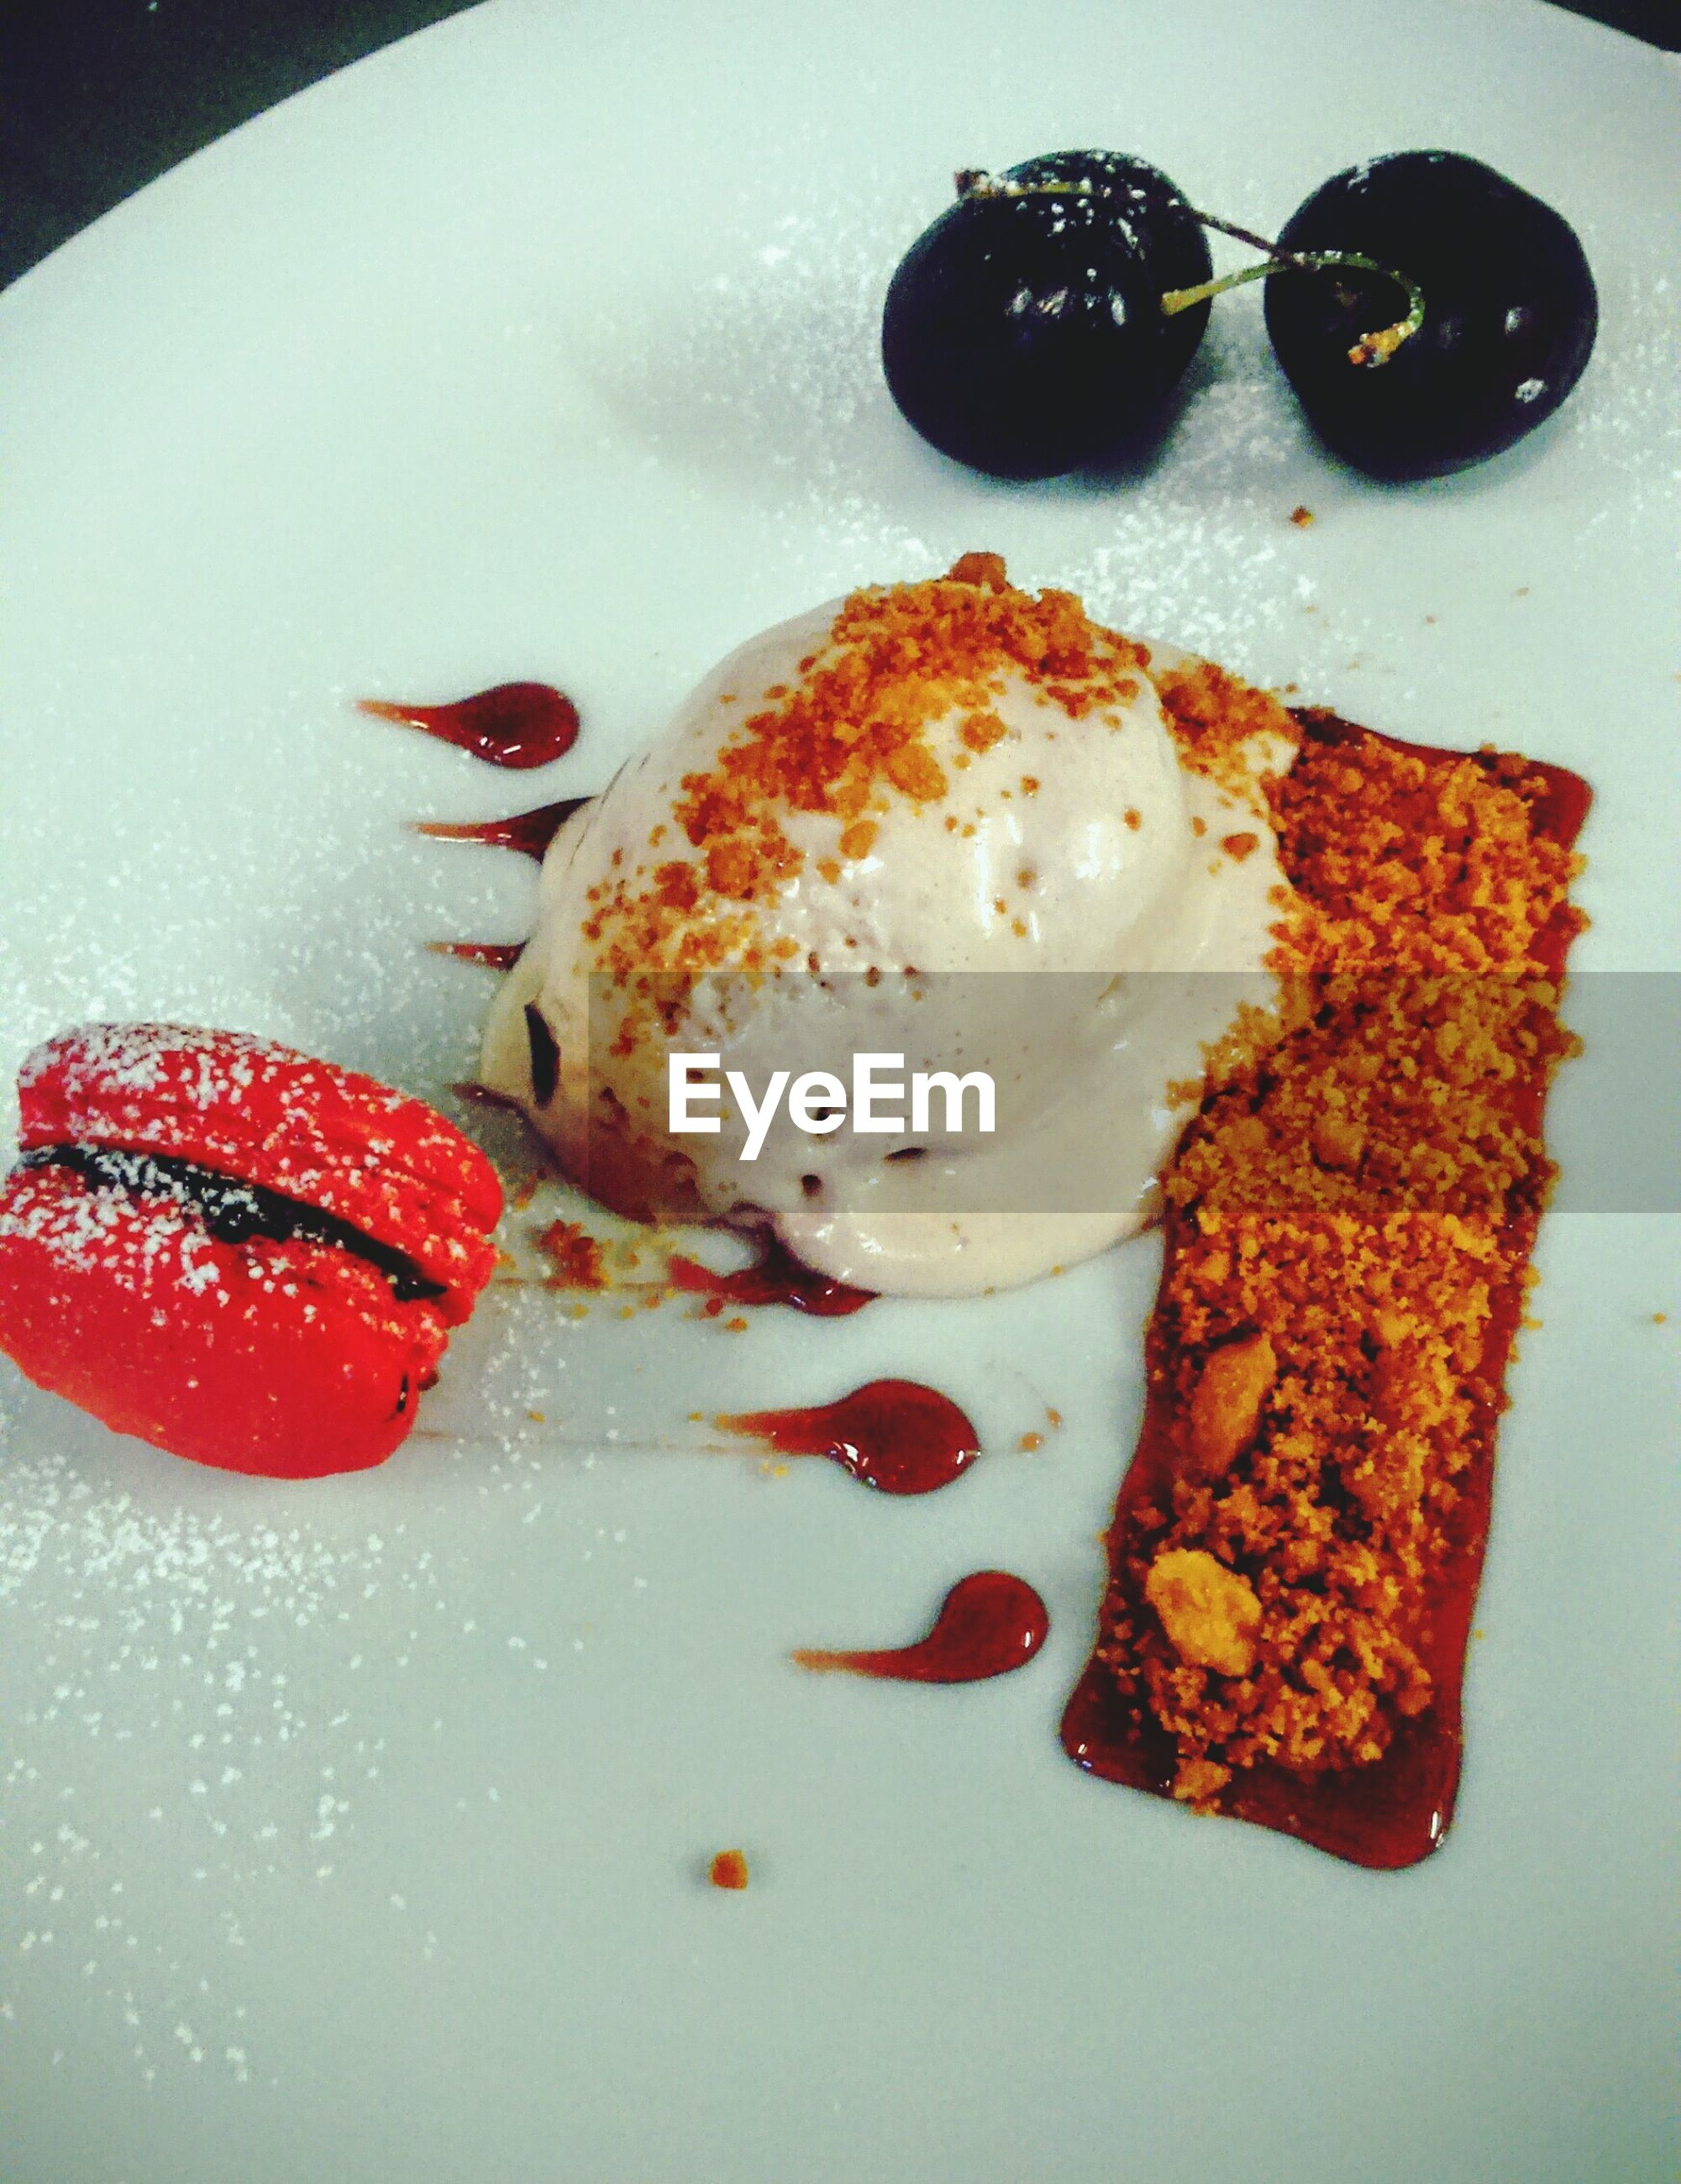 High angle view of dessert served on plate